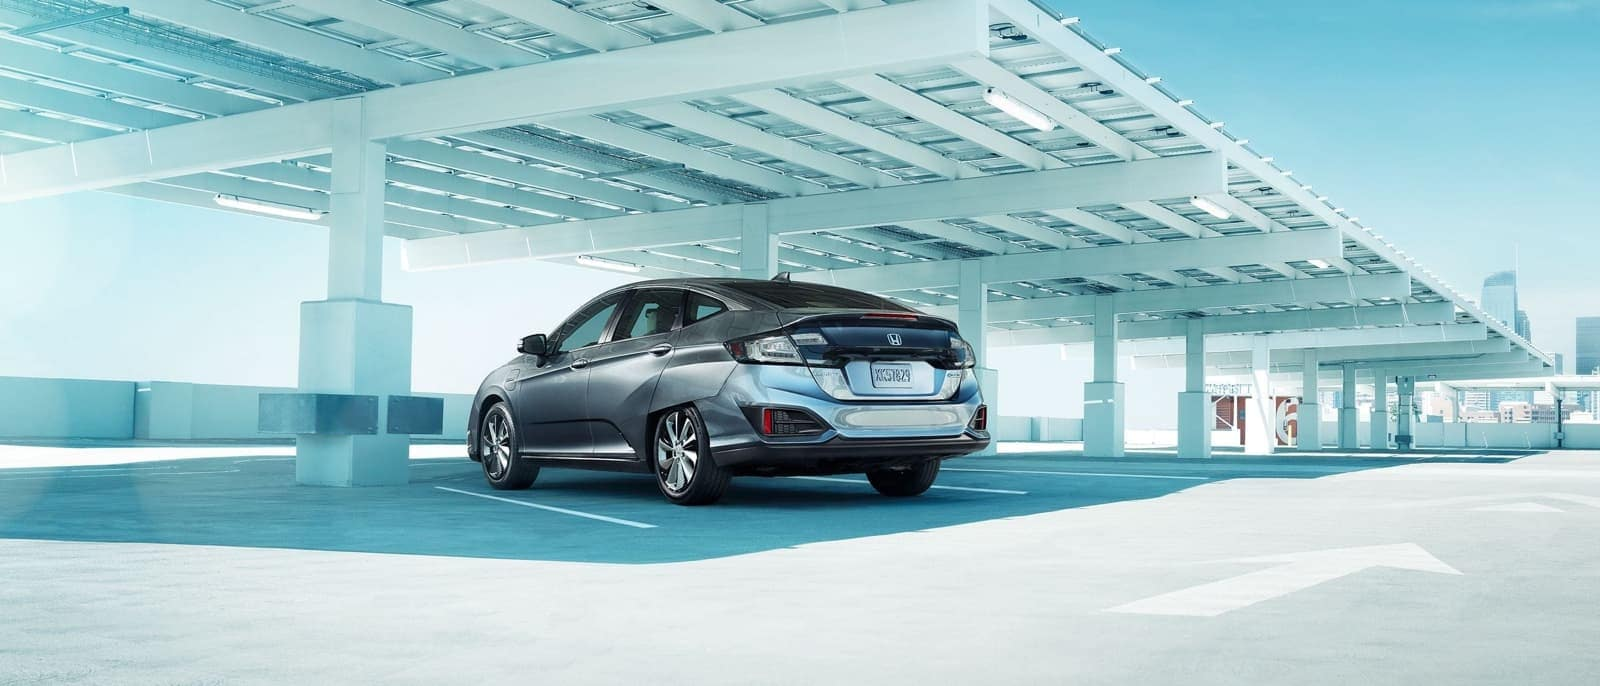 2018 Honda Clarity Electric parked